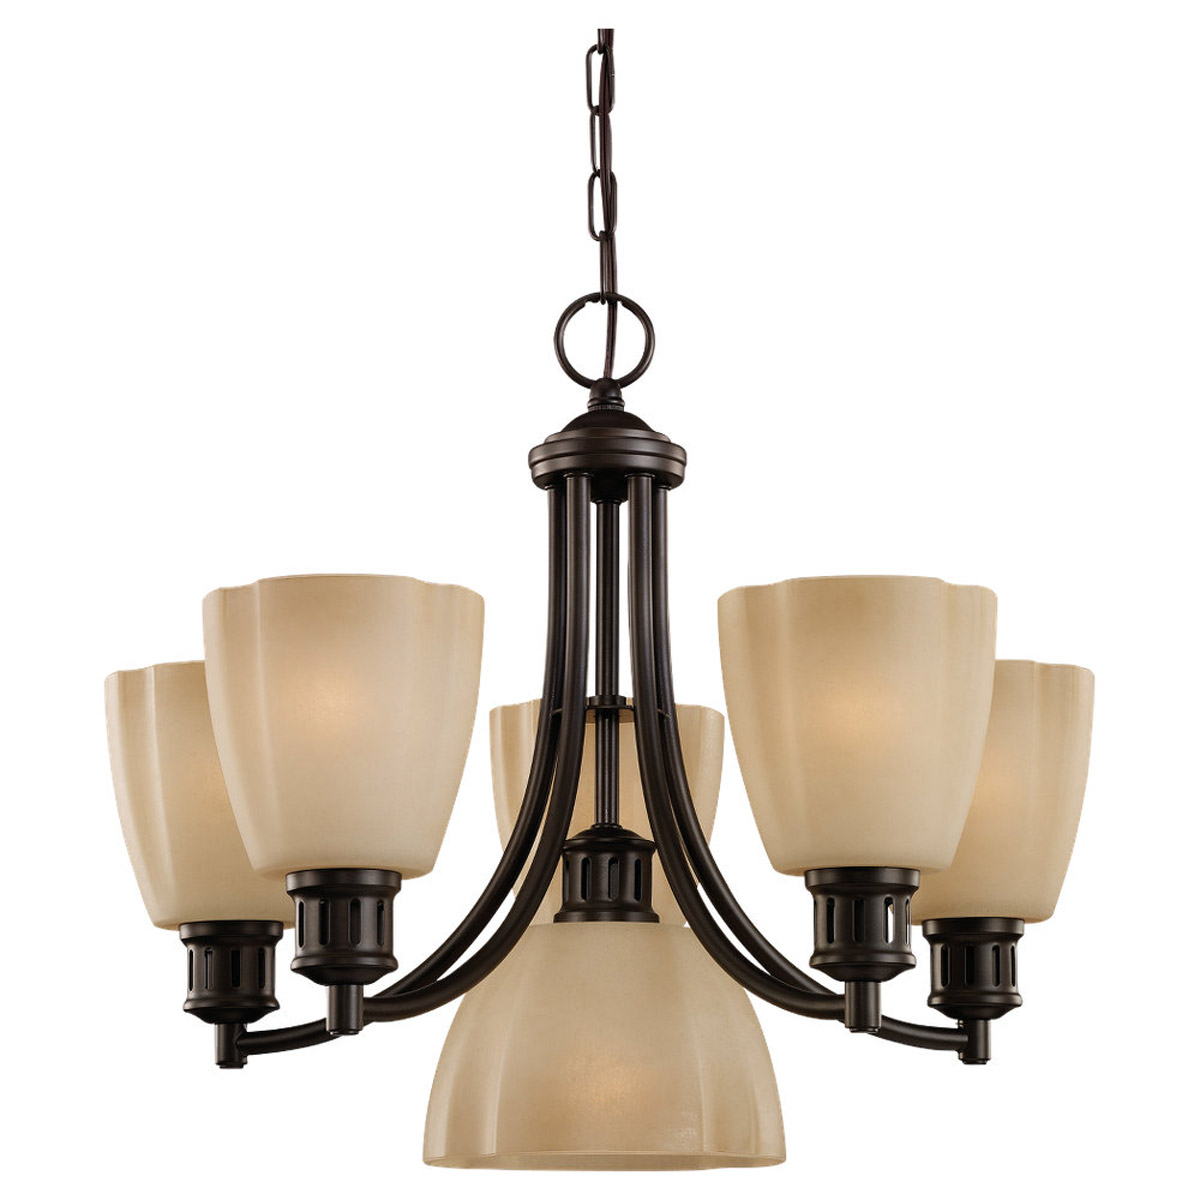 Sea Gull Lighting Century 6 Light Chandelier in Heirloom Bronze 31476-782